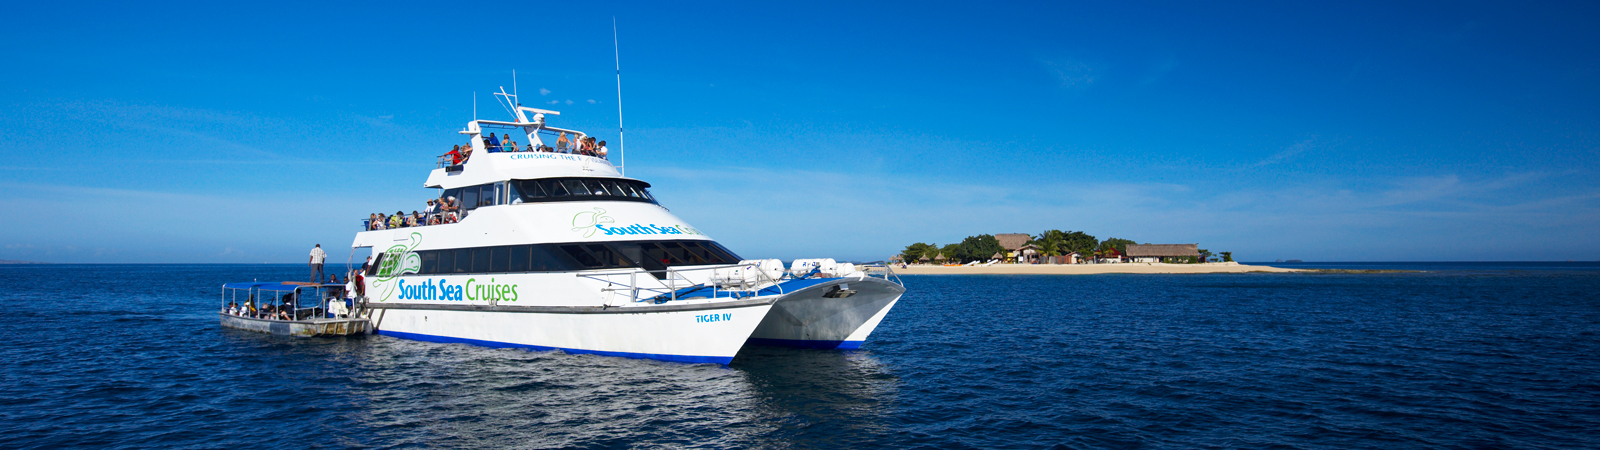 Fiji Island Resort Transfers